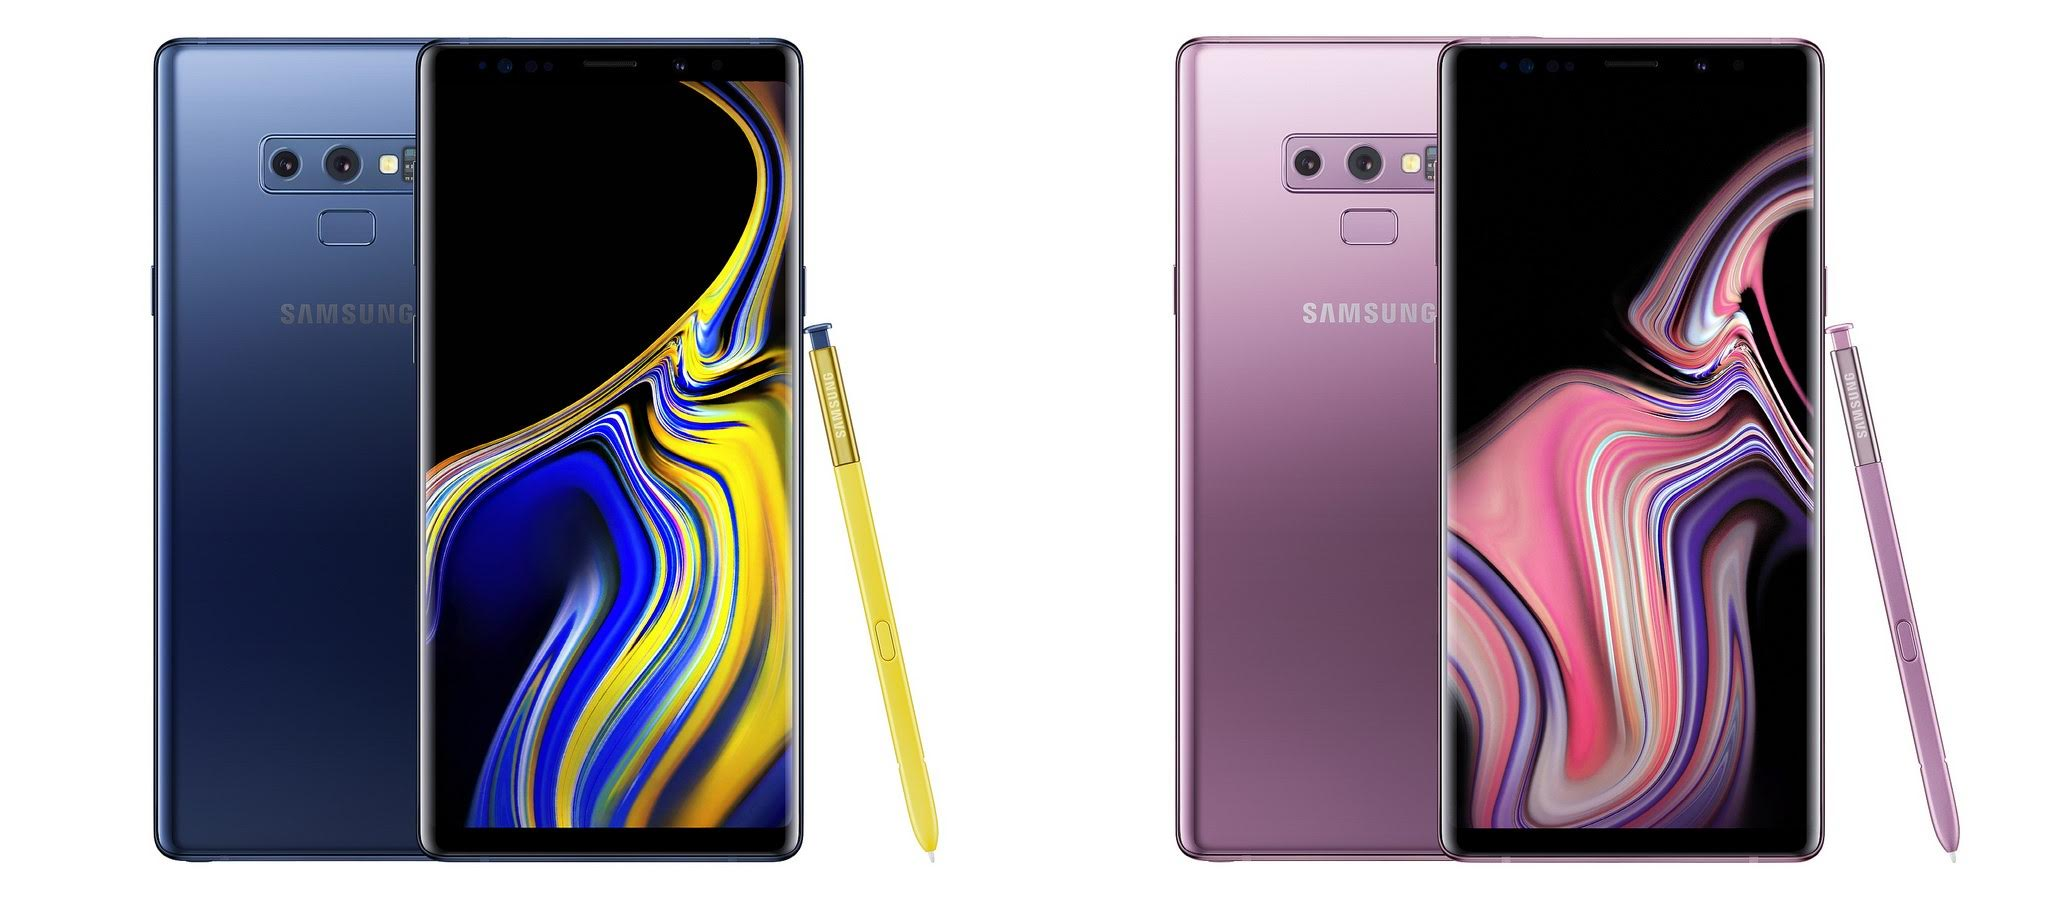 71257281064 Samsung lanza el nuevo Galaxy Note 9 y el Galaxy Watch - Revista Summa